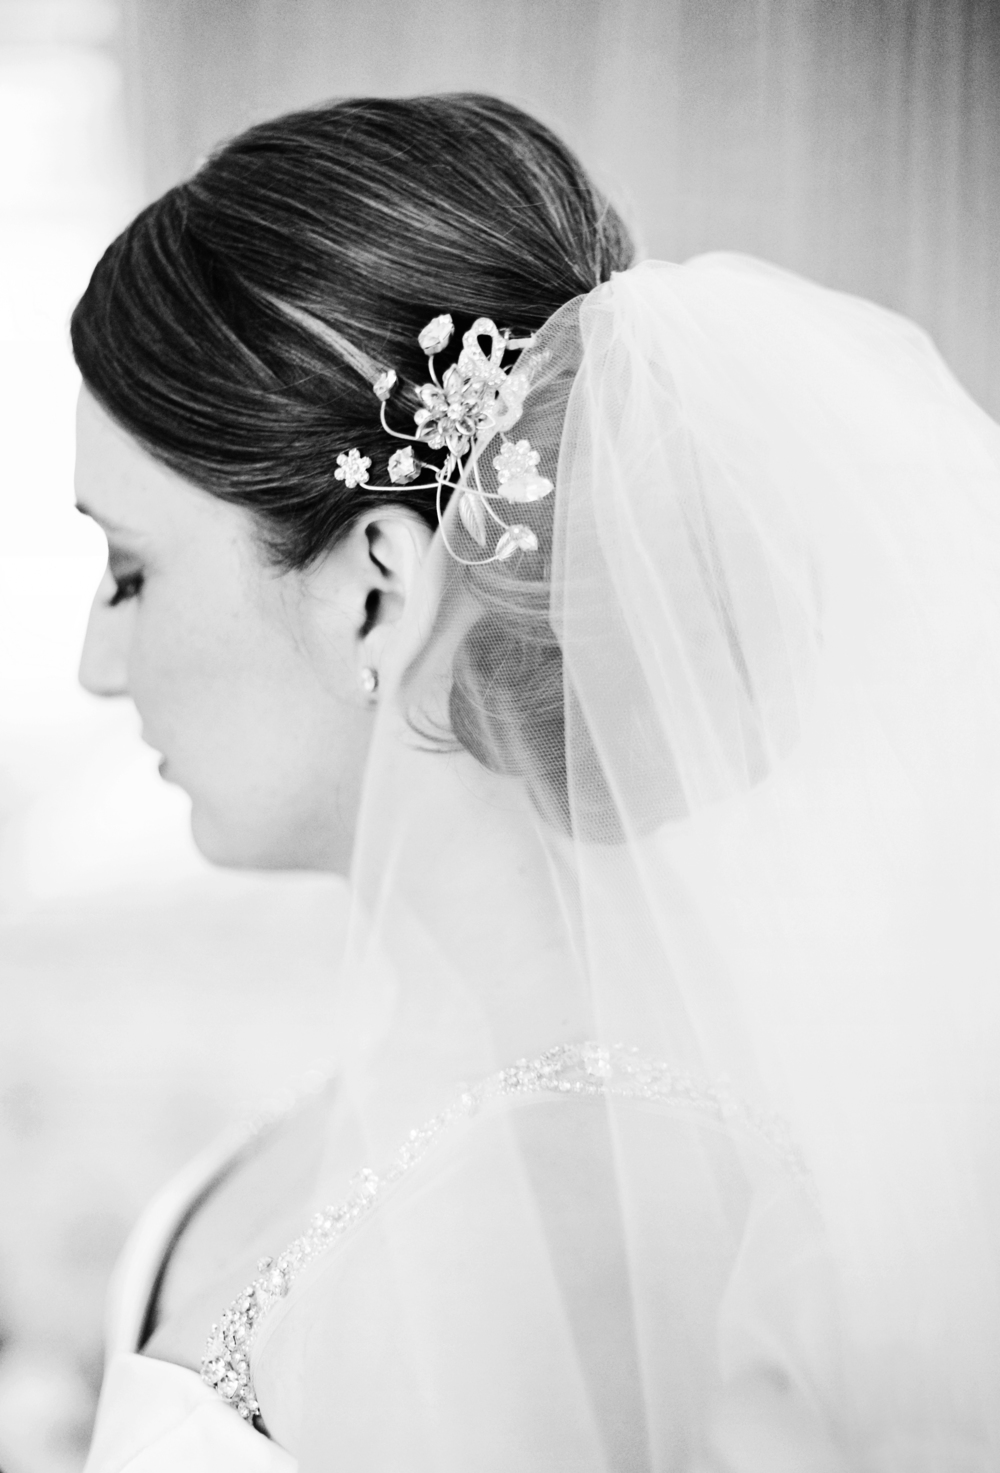 Bridal hair up with veil